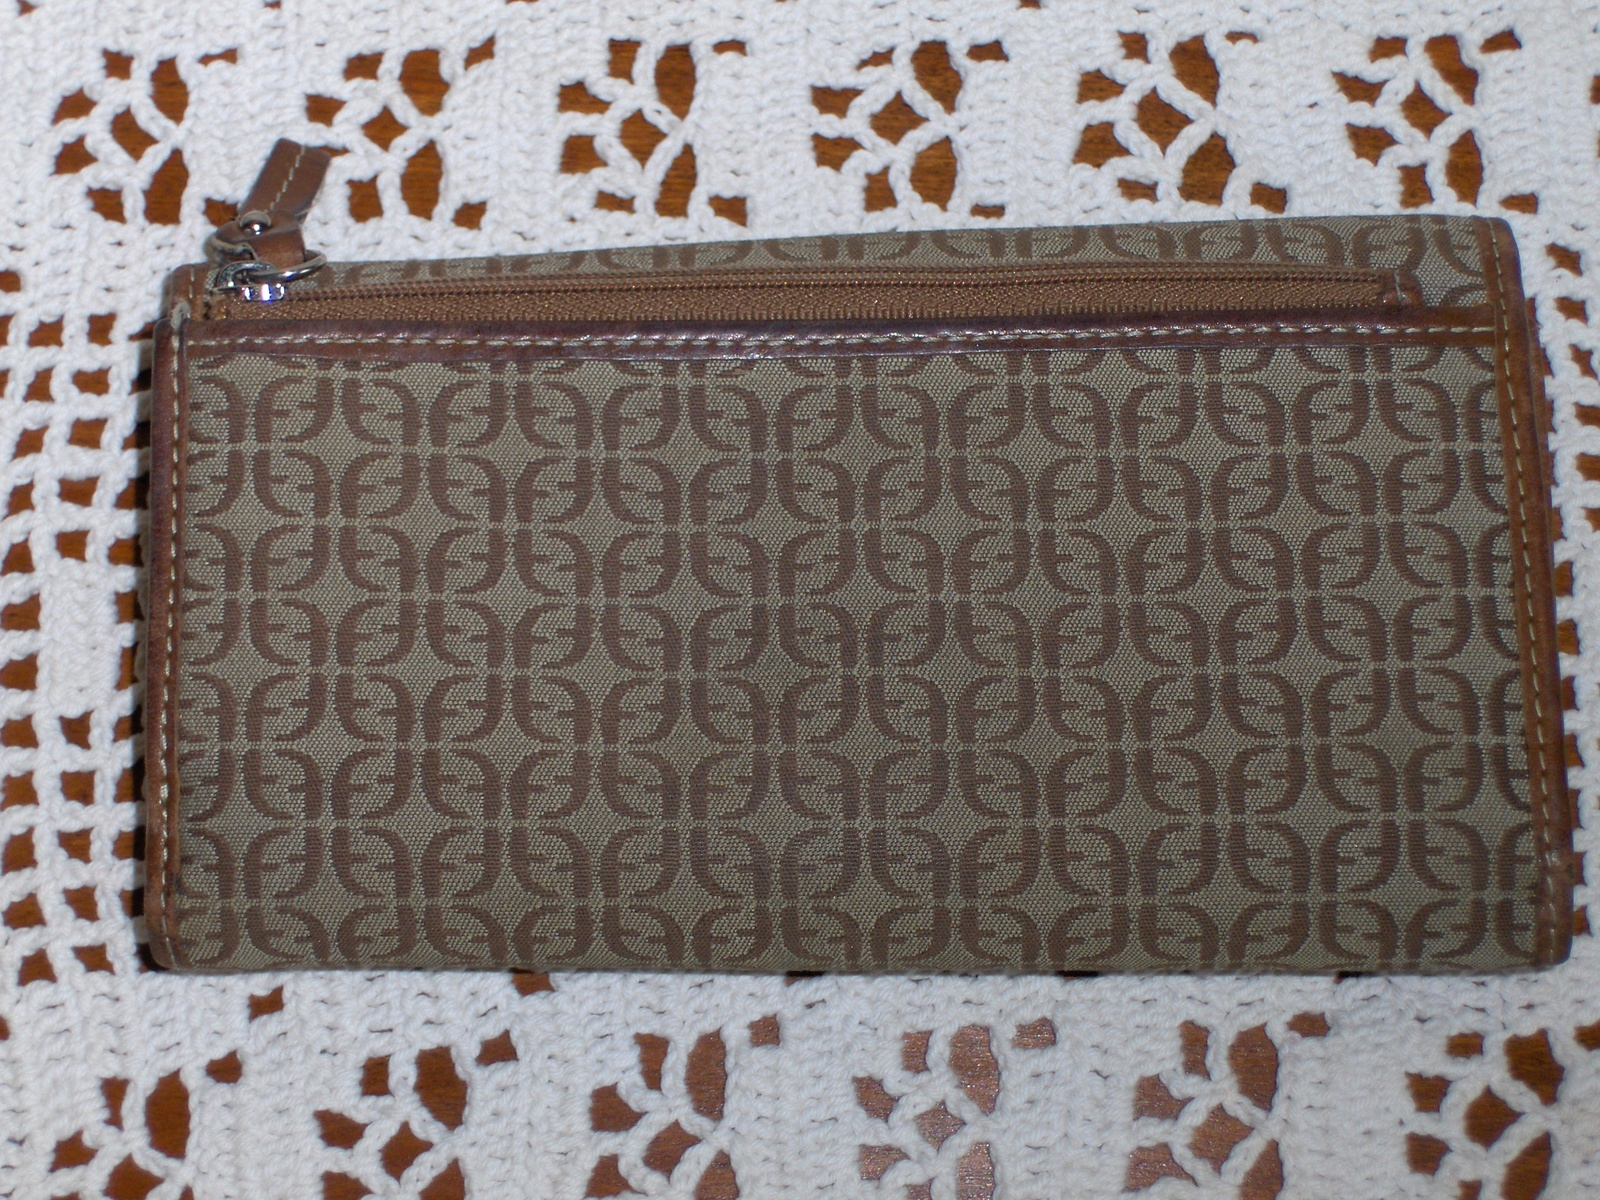 Fossil Clutch Wallet Brown Logo Leather Jacquard Organizer Checkbook Purse SL800